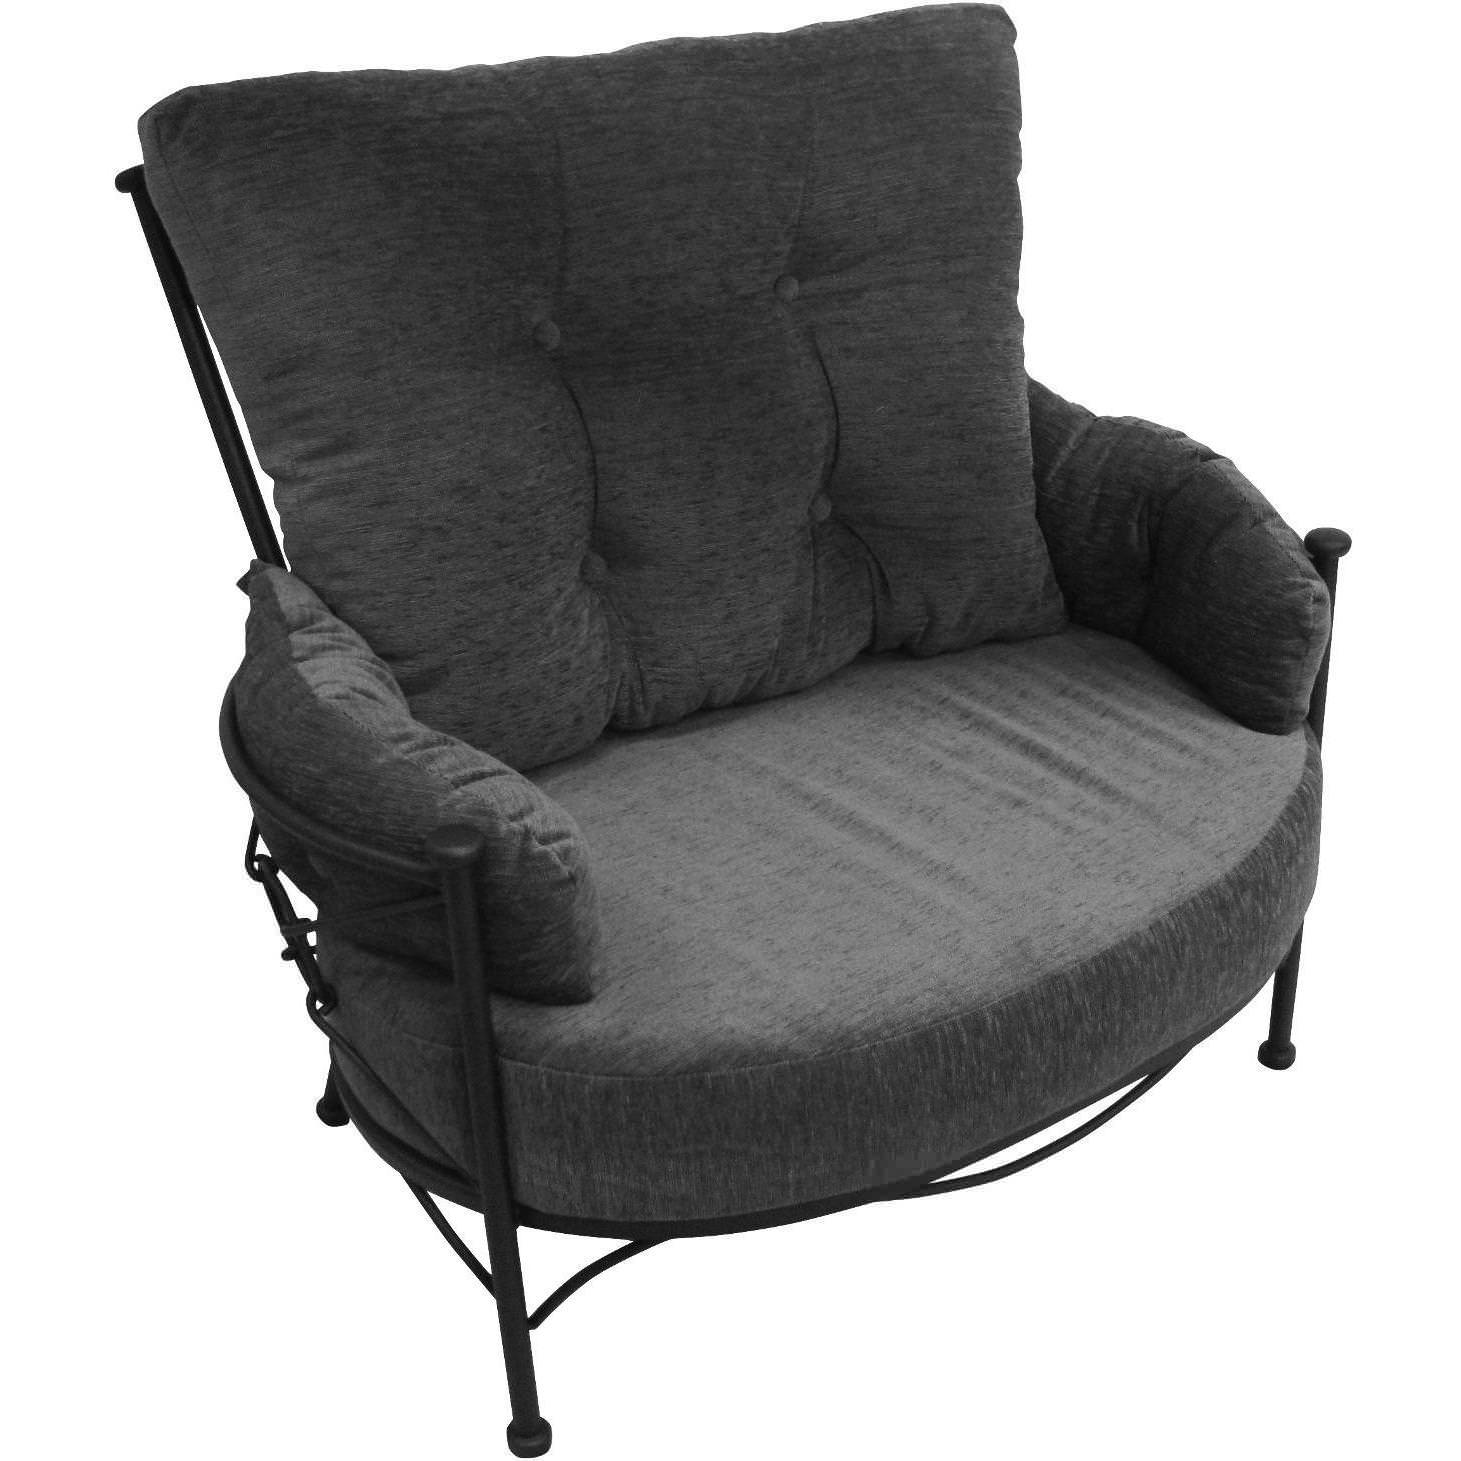 Image of: Big Cuddle Chair With Ottoman